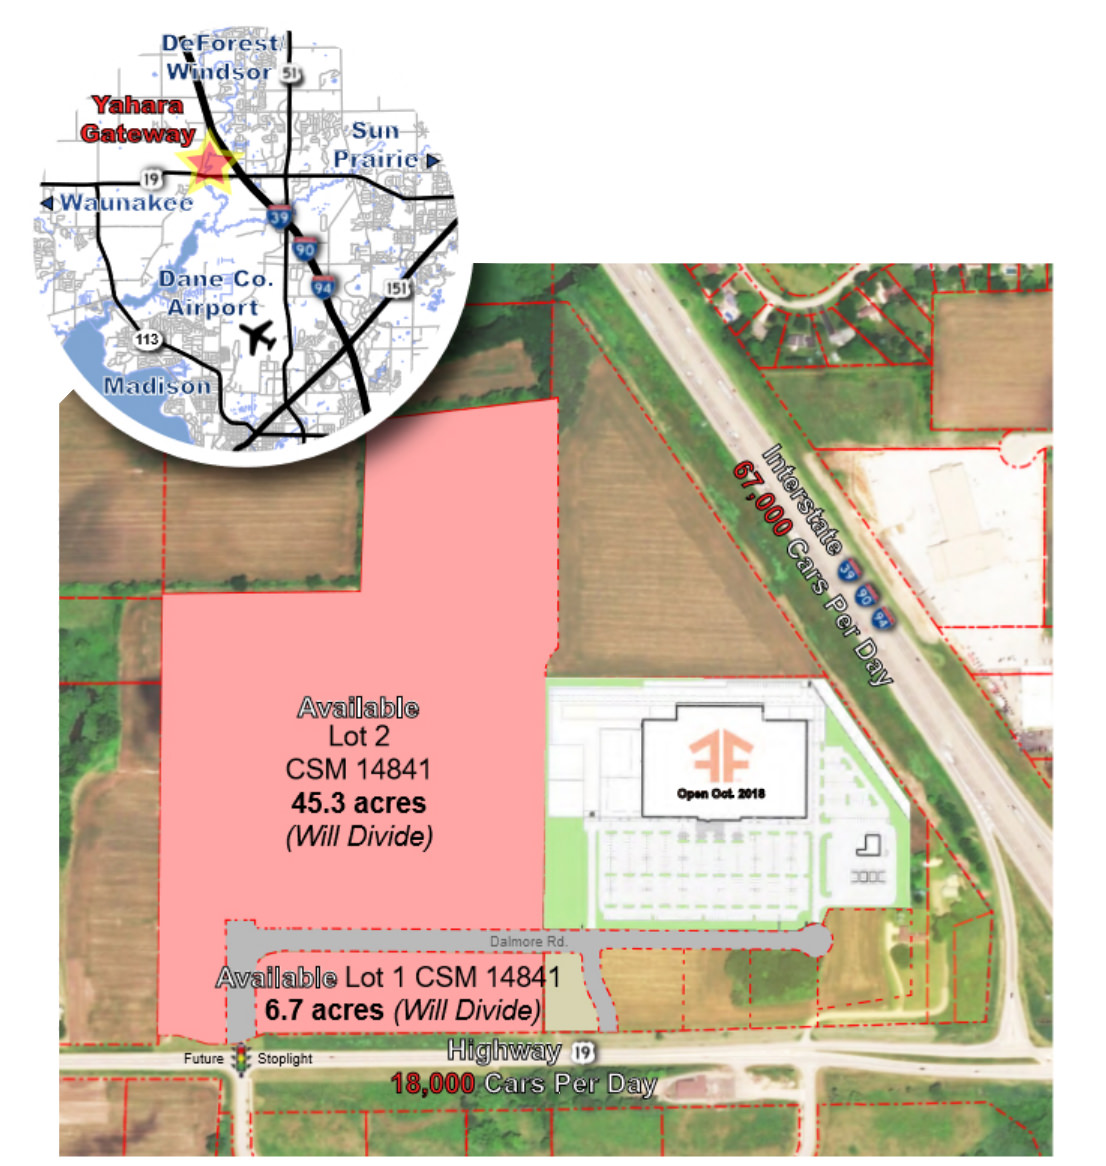 Yahara Gateway Site Map